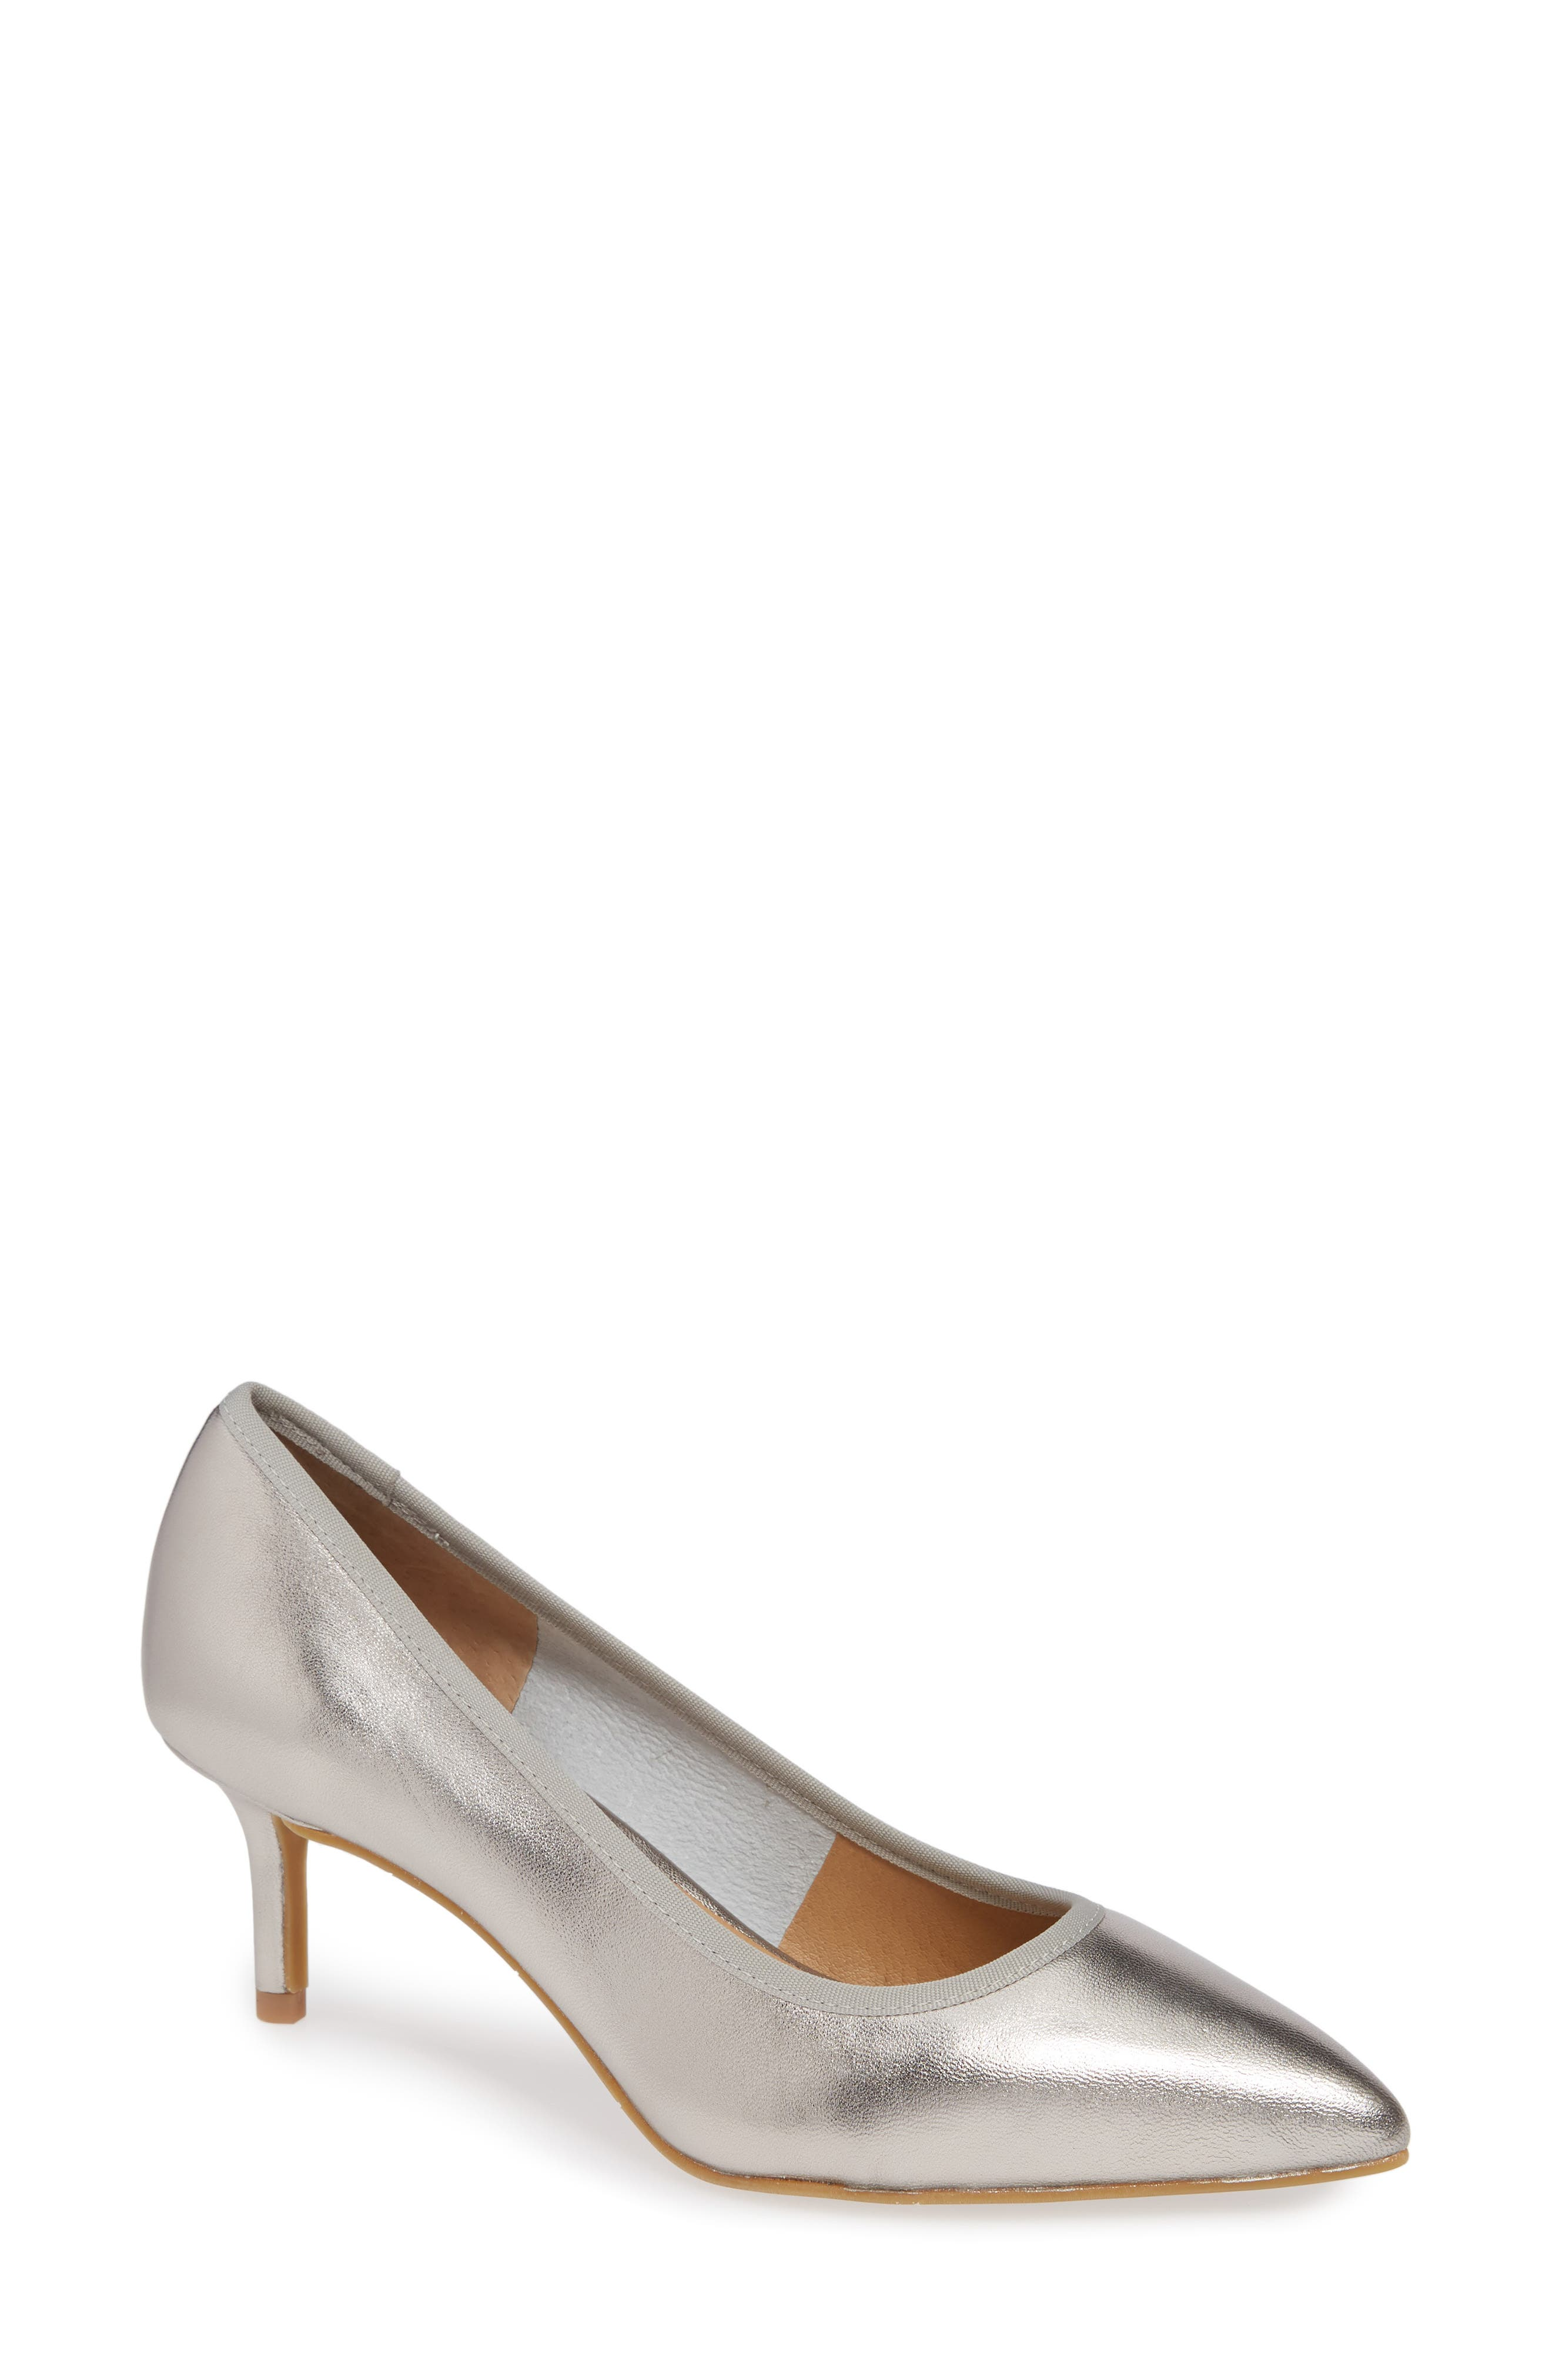 NIC + ZOE Cora Pointy Toe Pump,                         Main,                         color, PEWTER LEATHER